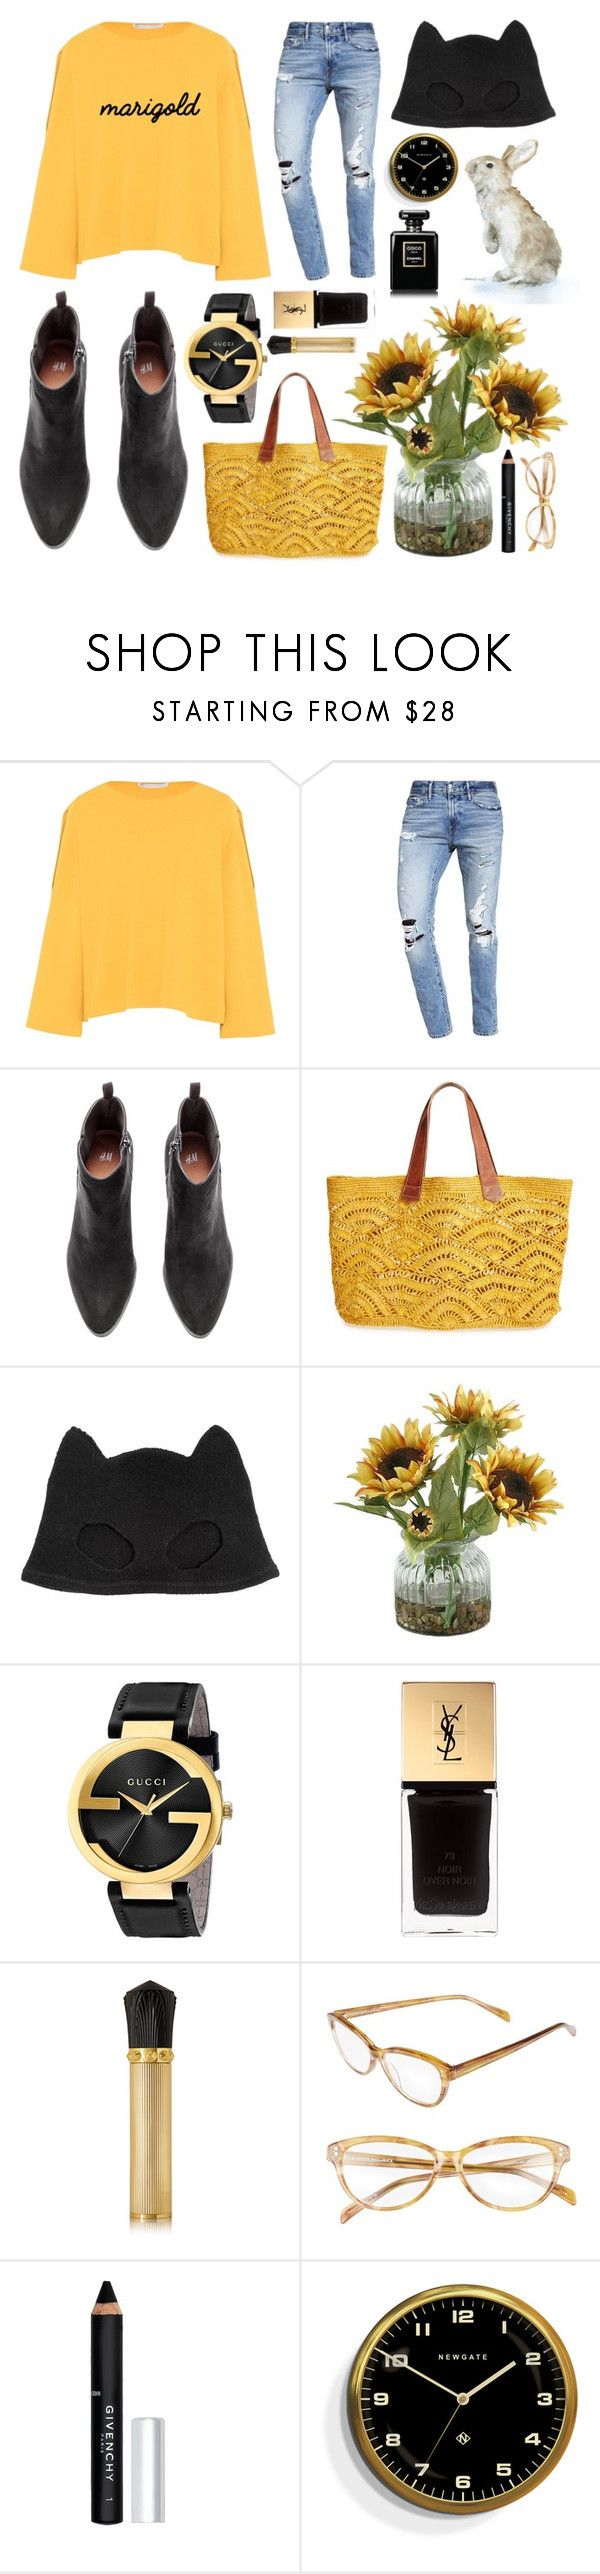 """""""Chava"""" by goingdigi ❤ liked on Polyvore featuring STELLA McCARTNEY, Abercrombie & Fitch, Mar y Sol, Silver Spoon Attire, Home Decorators Collection, Gucci, Yves Saint Laurent, Christian Louboutin, Corinne McCormack and Givenchy"""